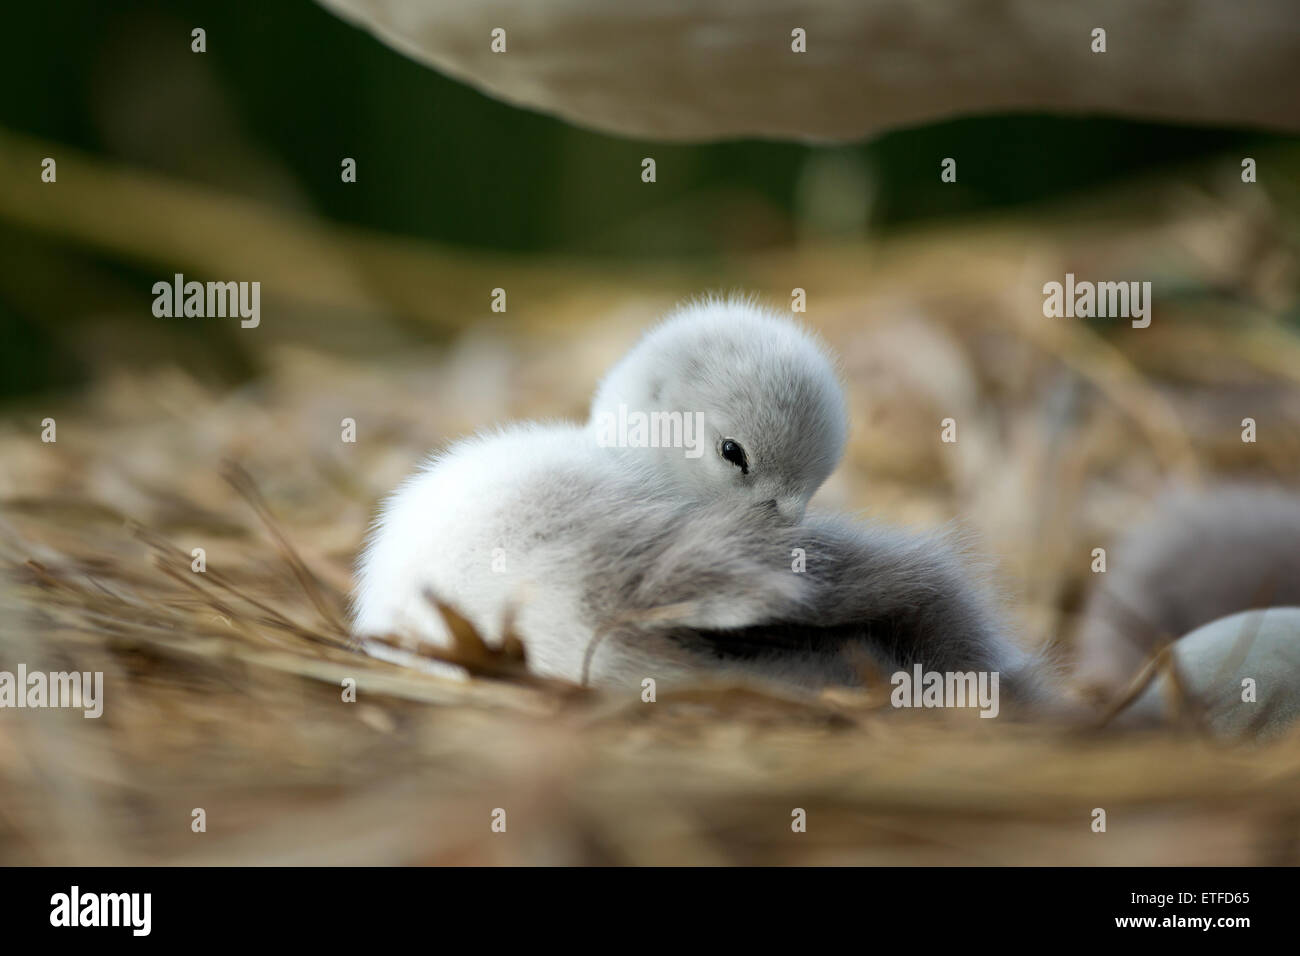 Mute Swan (Cygnus olor) cygnet awake on the nest, while mother stands over, protecting - Stock Image